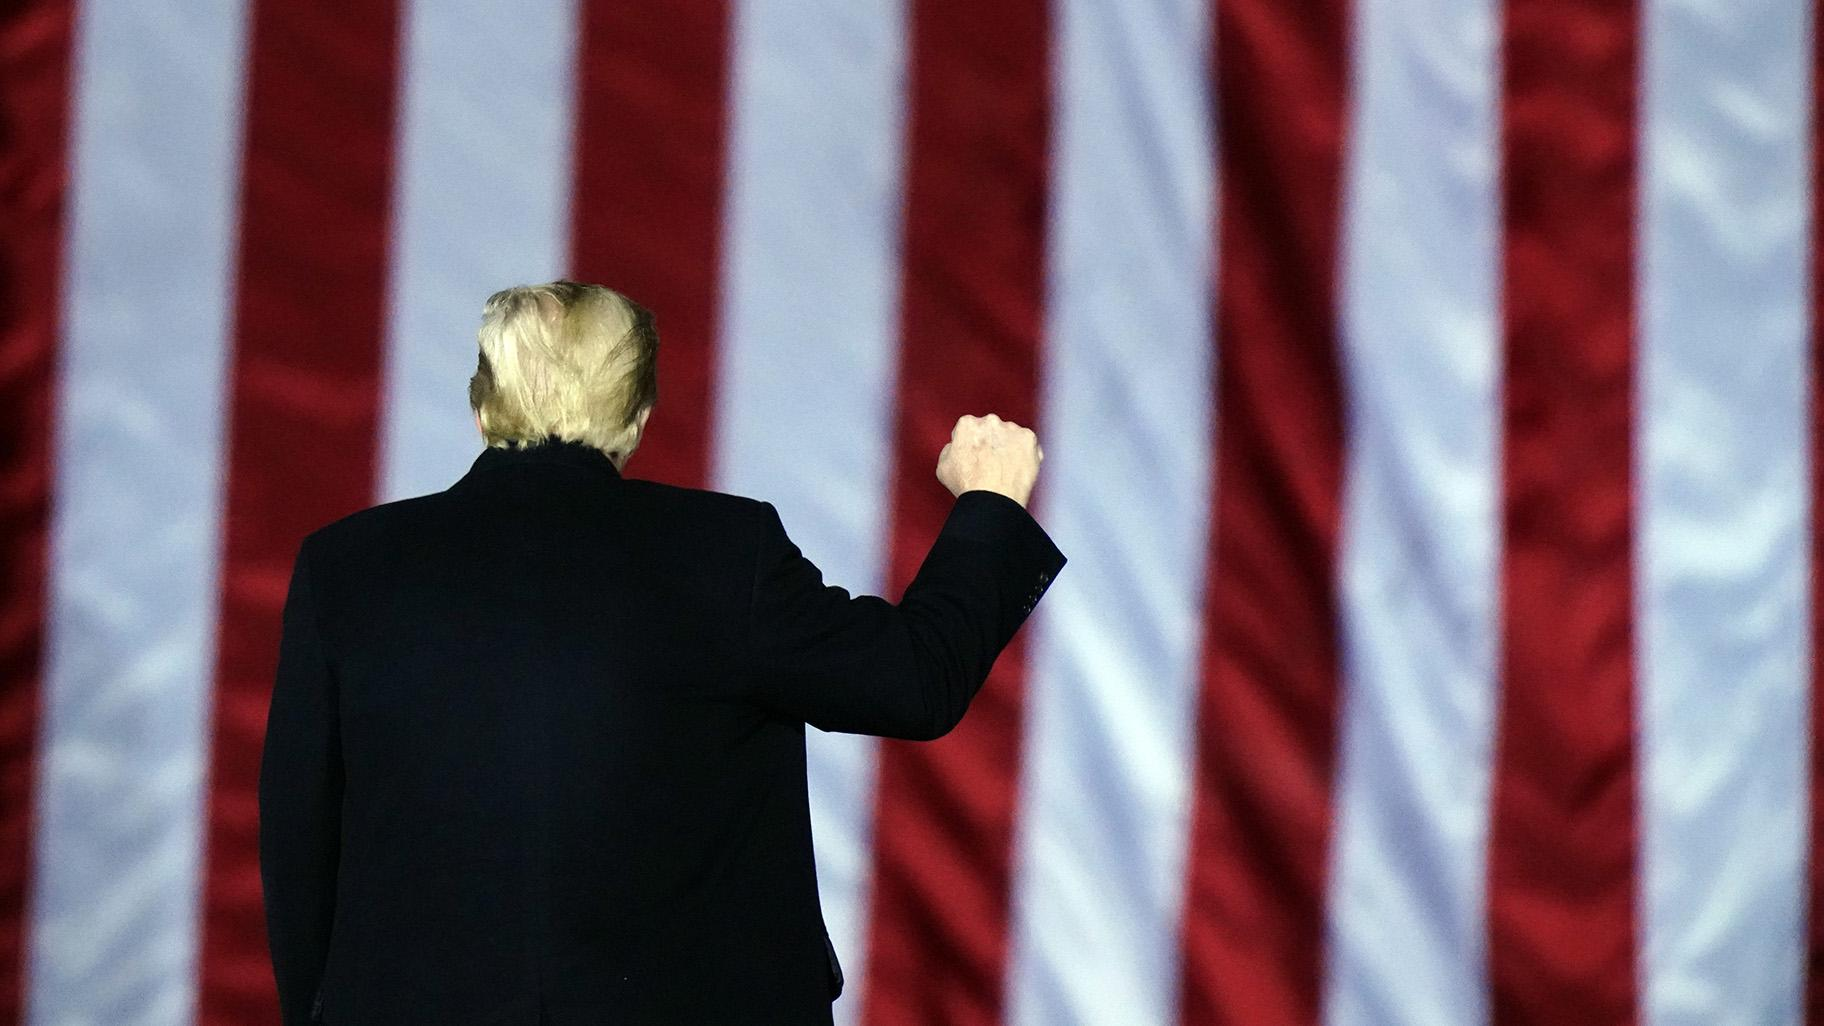 President Donald Trump gestures at a campaign rally in support of U.S. Senate candidates Sen. Kelly Loeffler, R-Ga., and David Perdue in Dalton, Ga., Monday, Jan. 4, 2021. (AP Photo / Brynn Anderson)